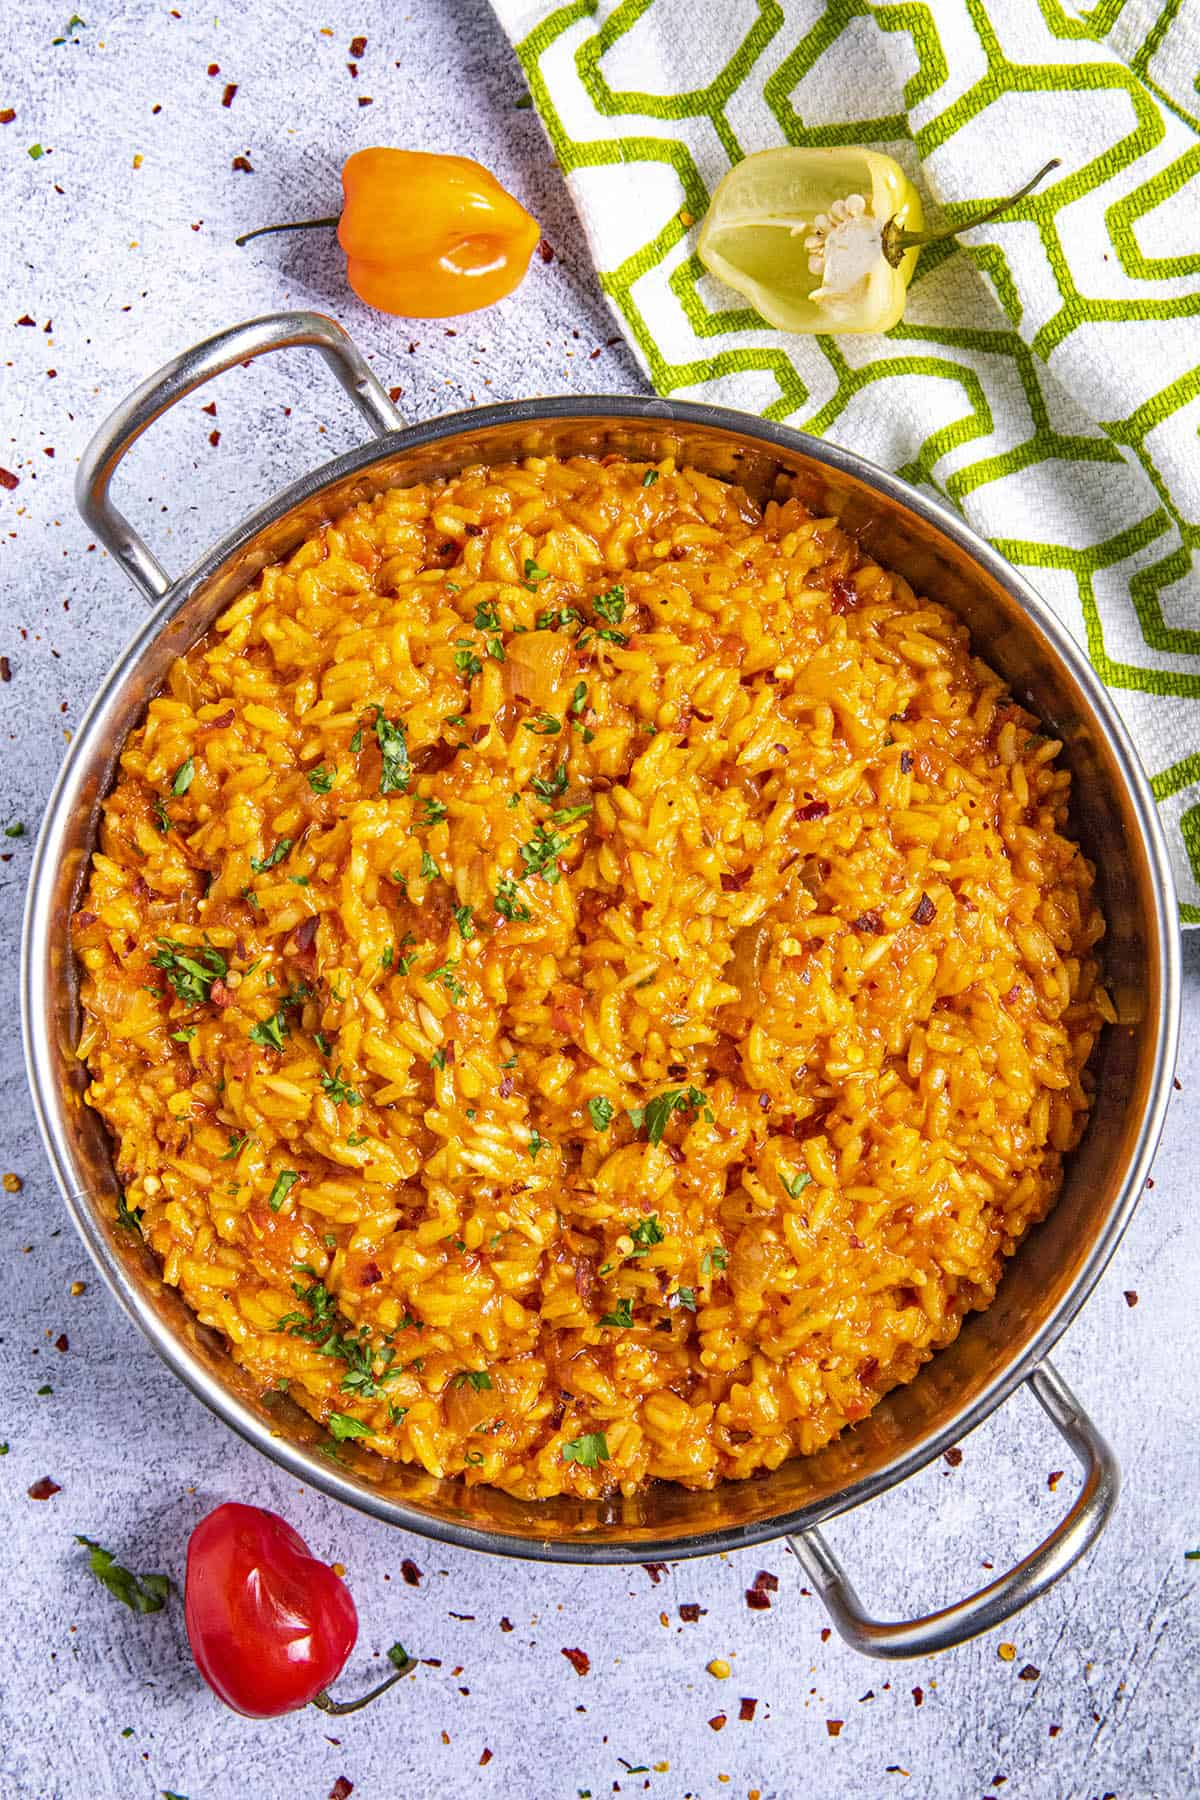 Jollof Rice in a bowl with extra scotch bonnet peppers